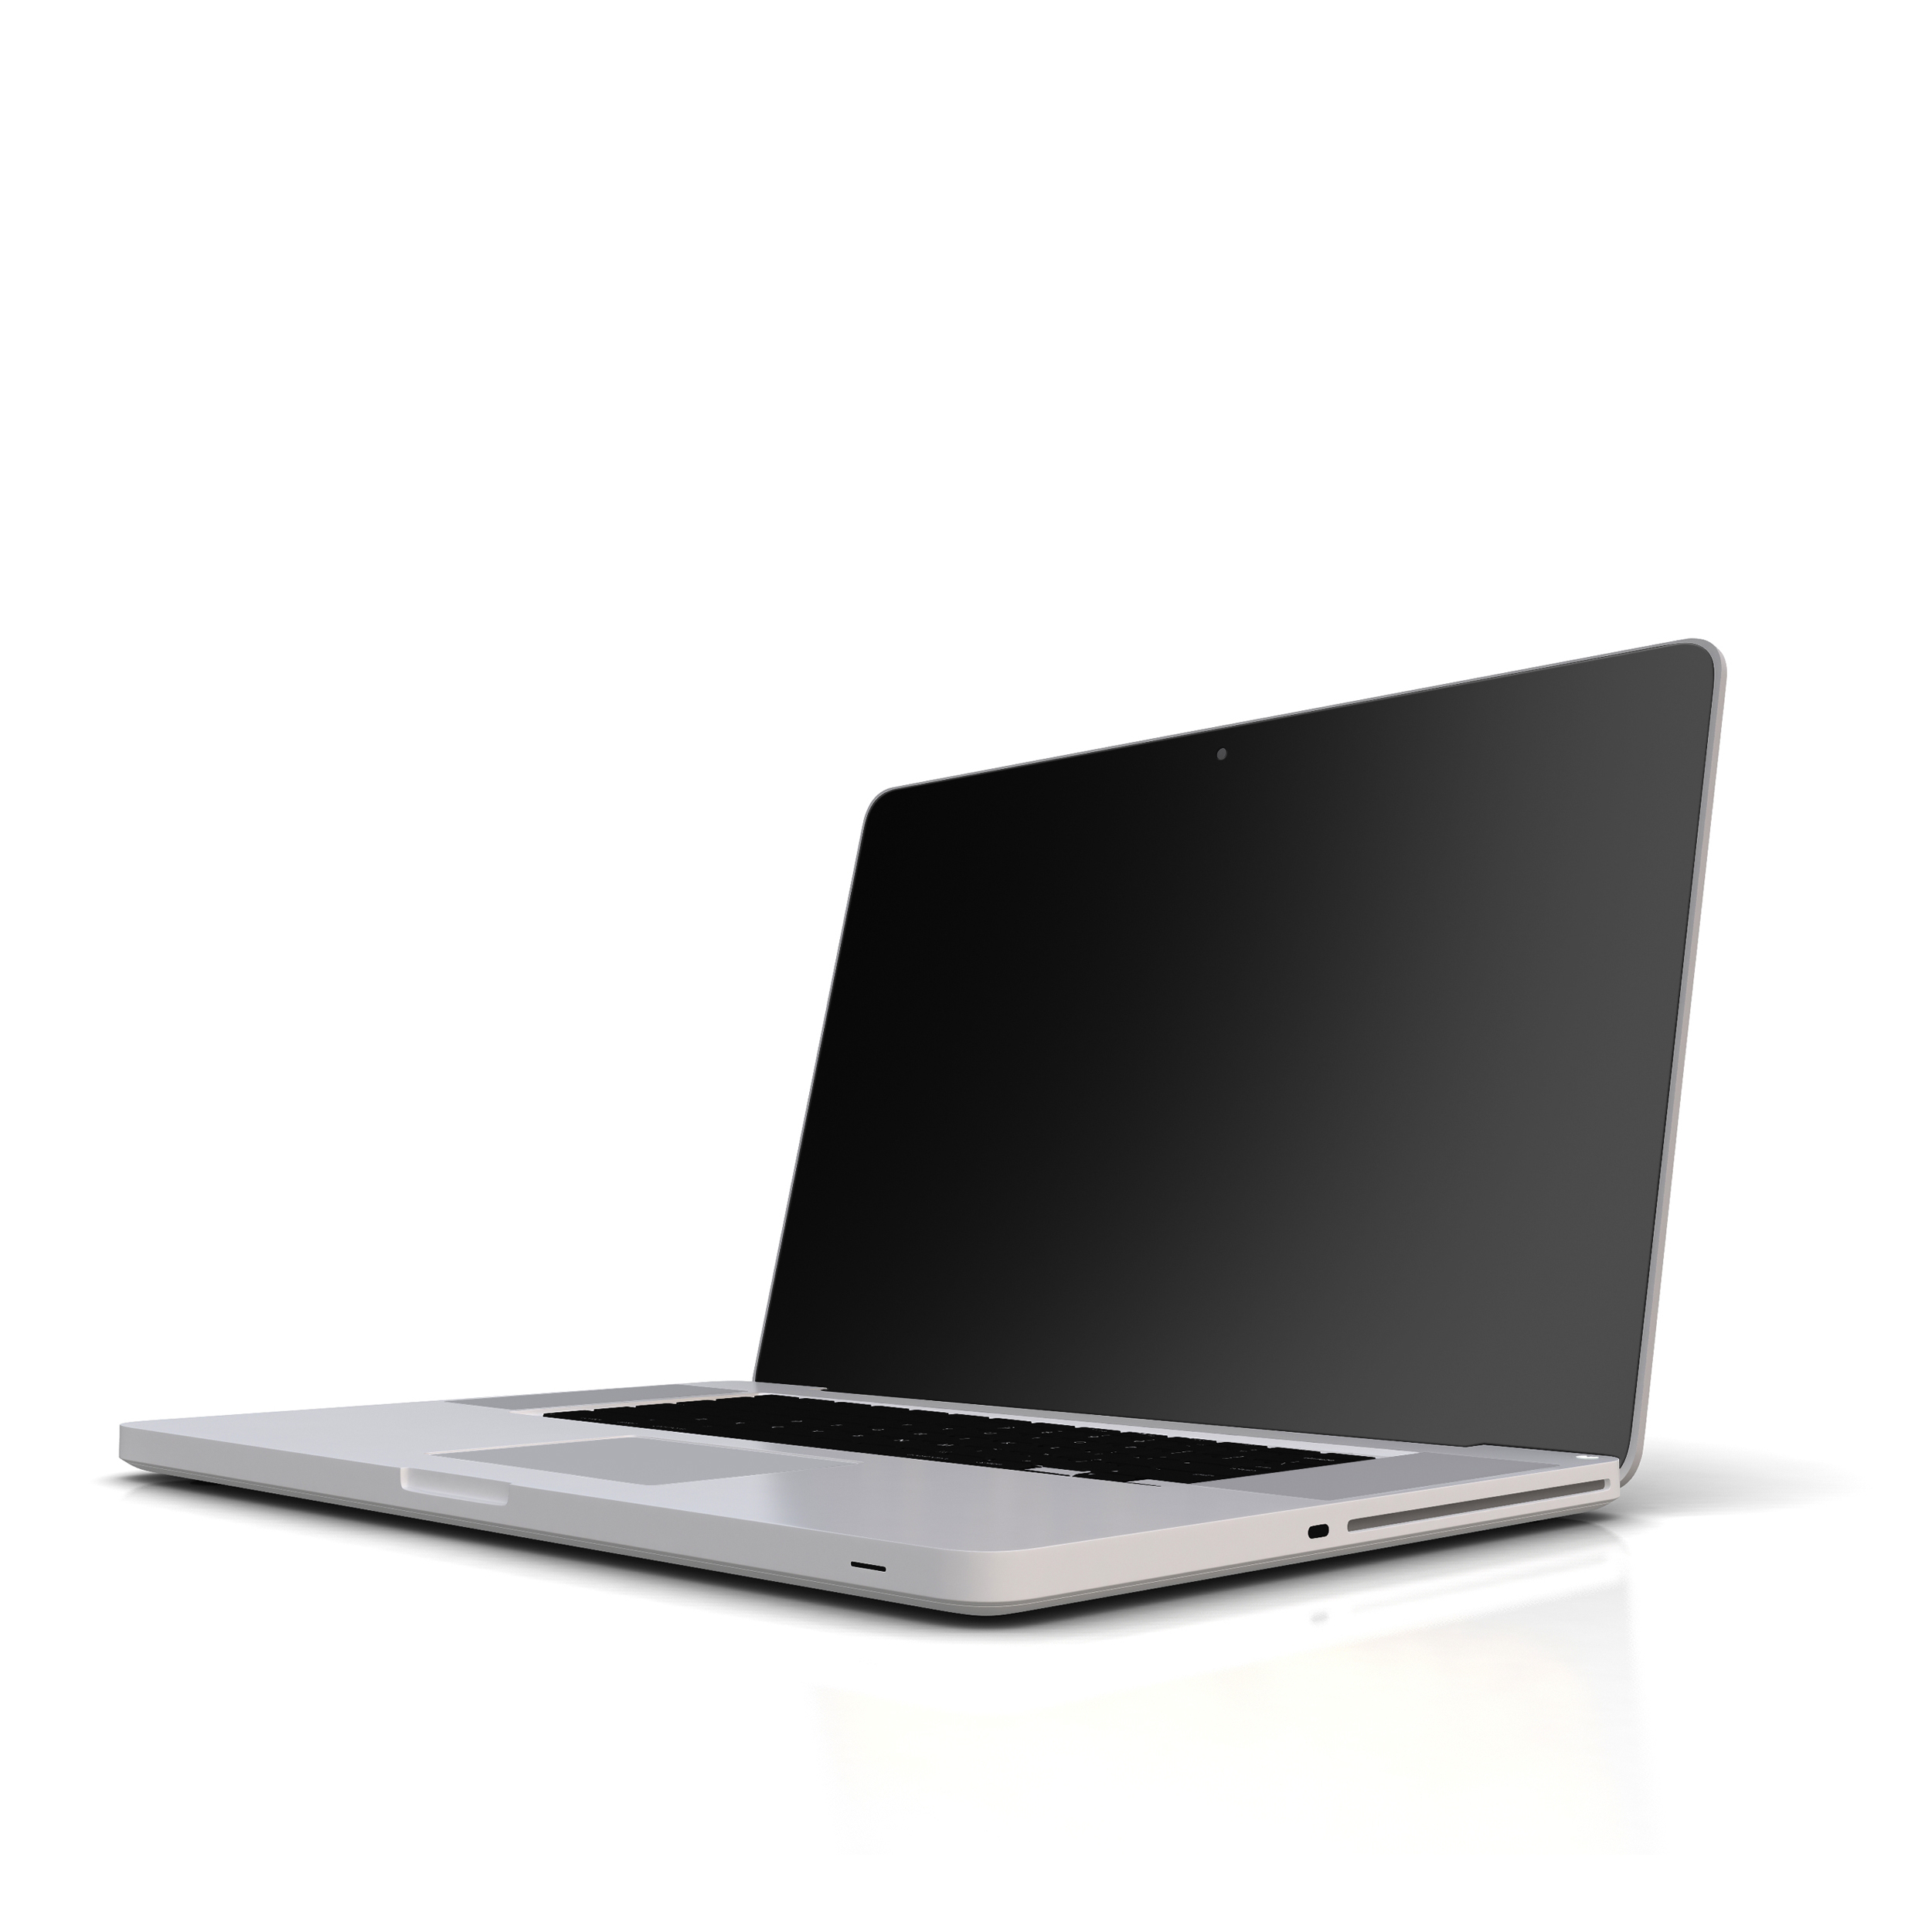 3M-98044061947-Privacy-Filter-for-Apple-MacBook-Pro-15-inch-with-Retina-display